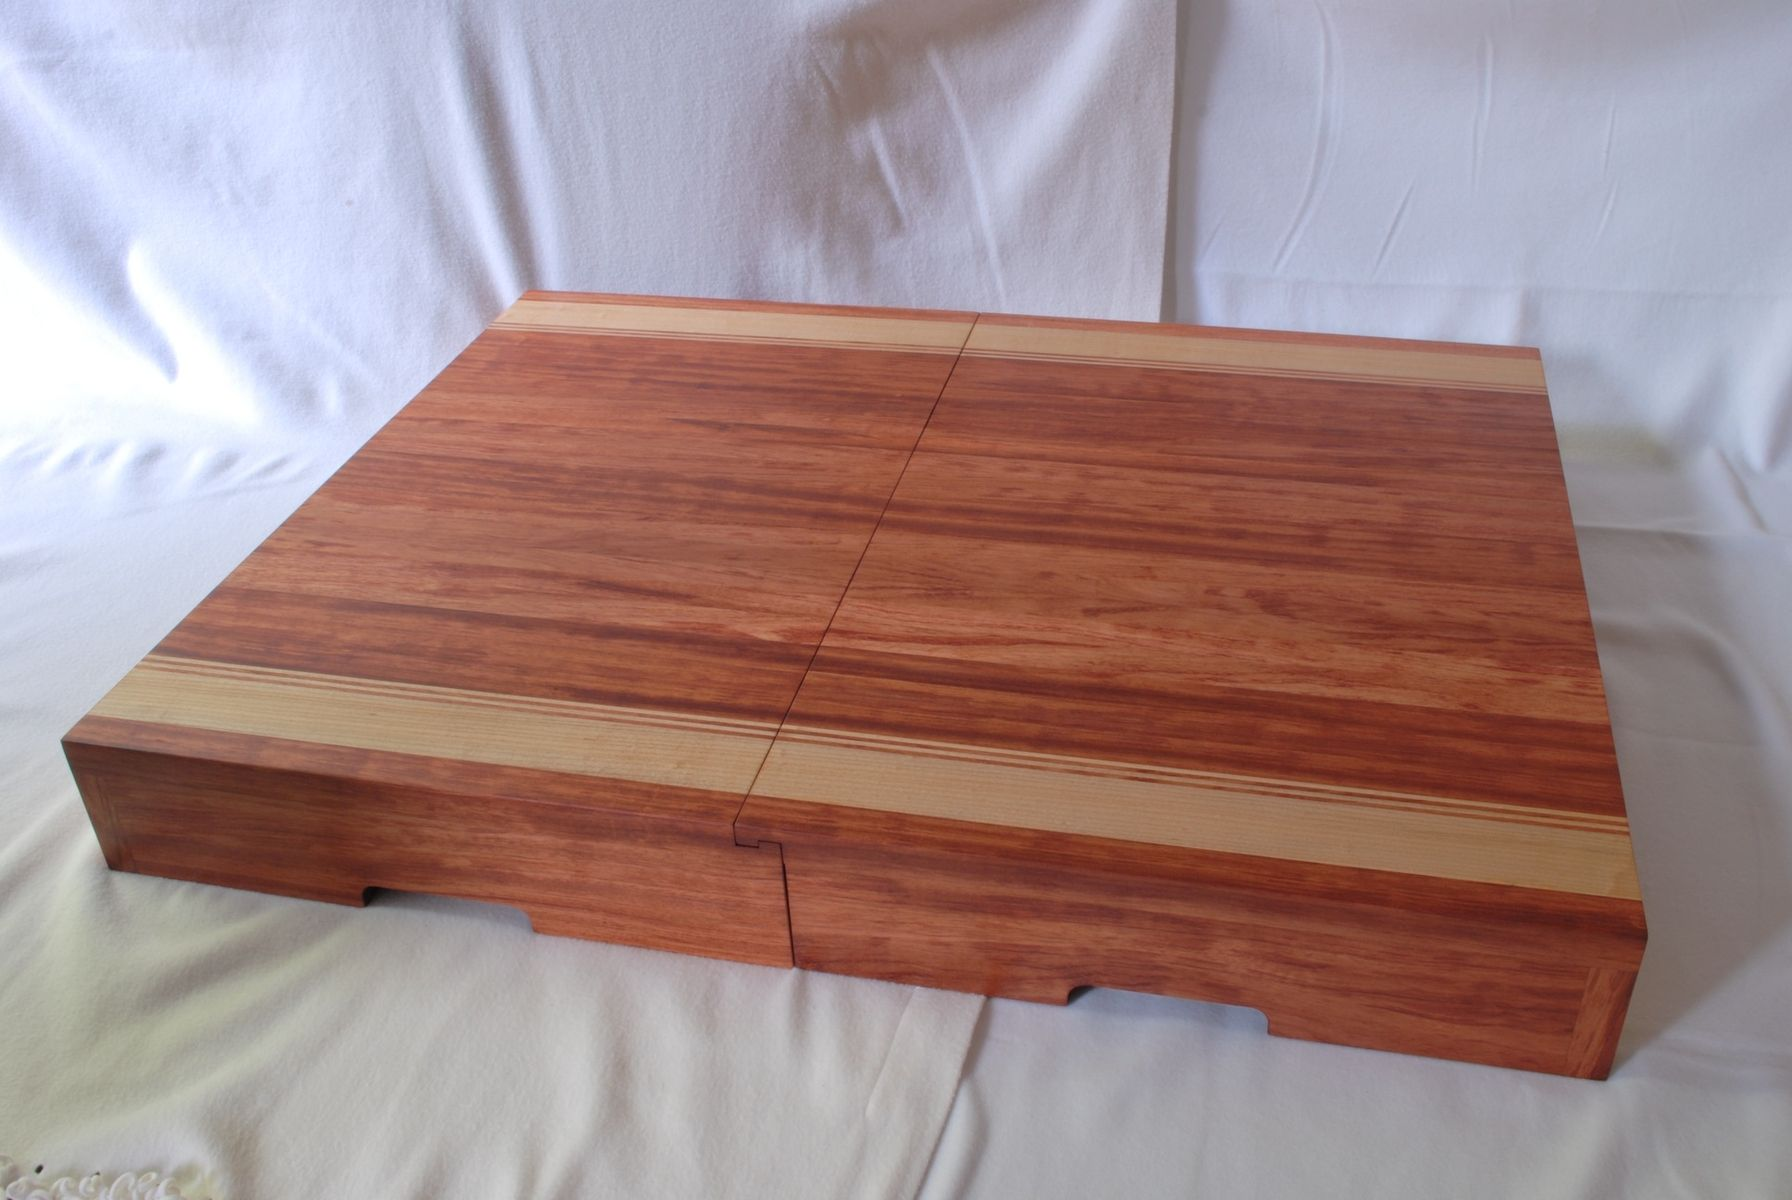 Hand Made Custom Cutting Board For Over My Stove By Clark